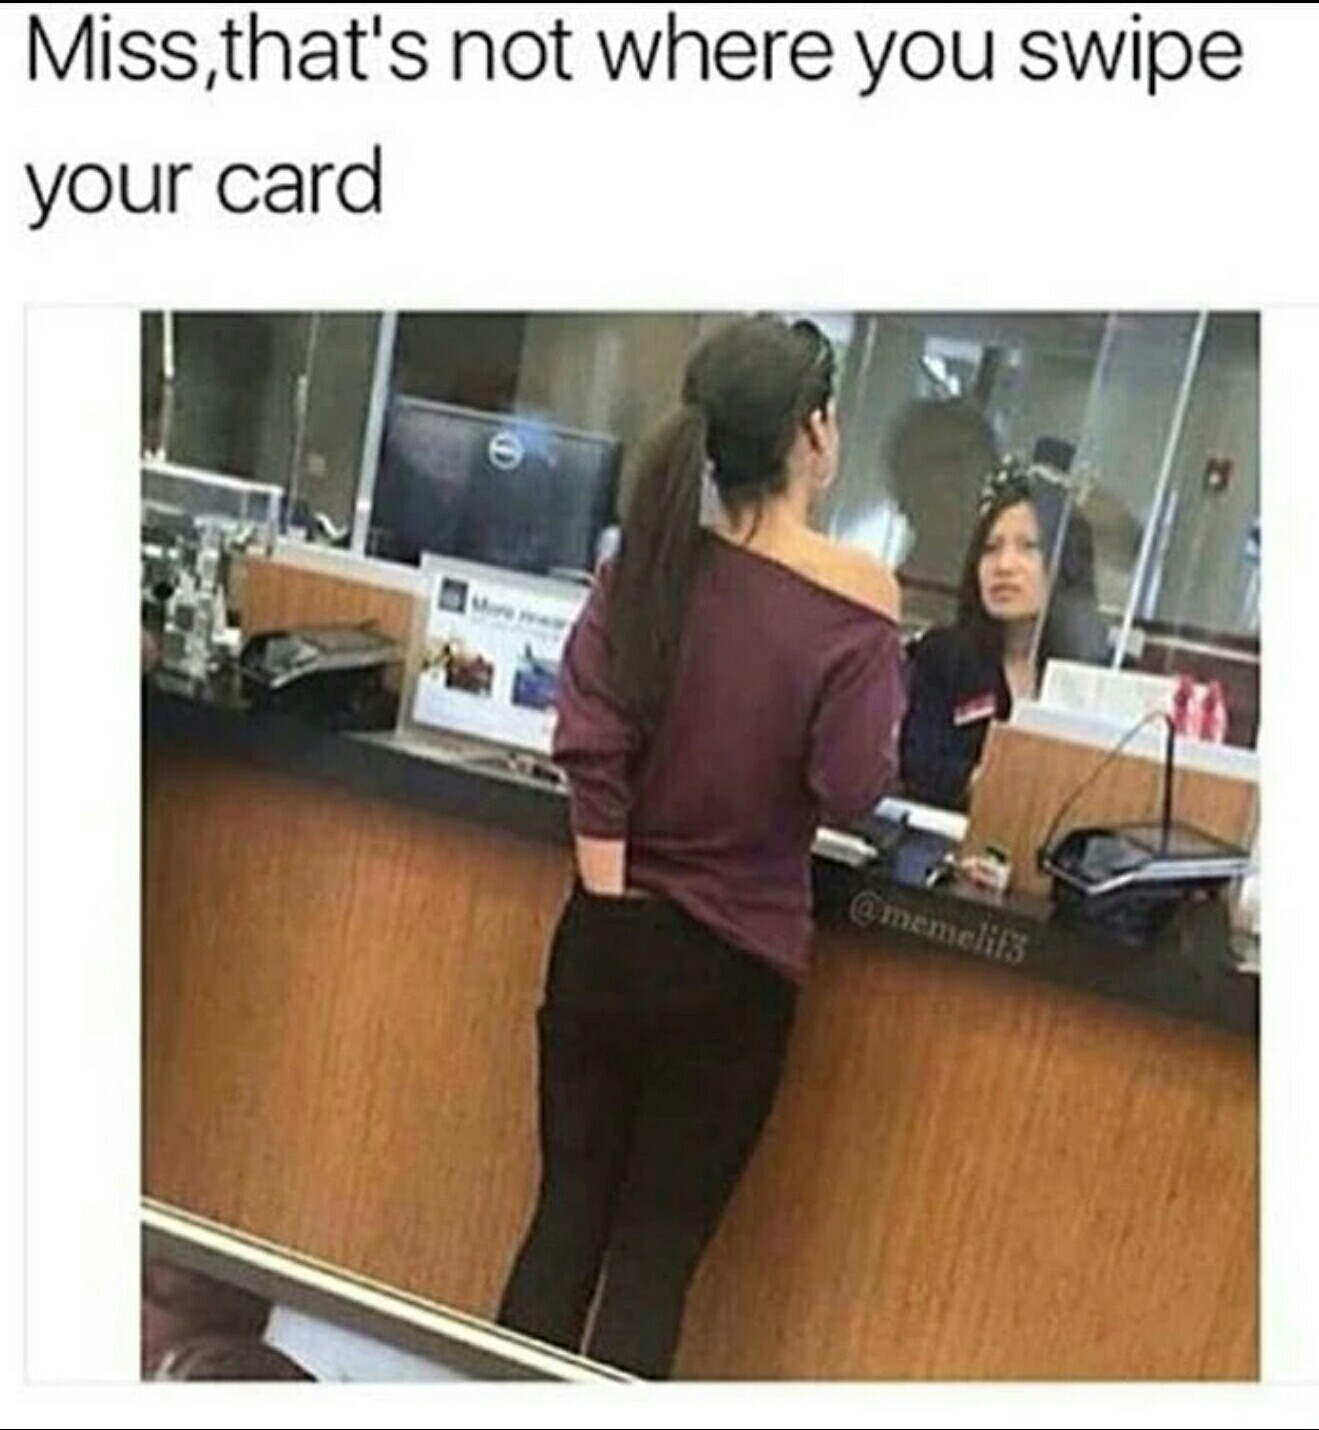 We use chip cards now